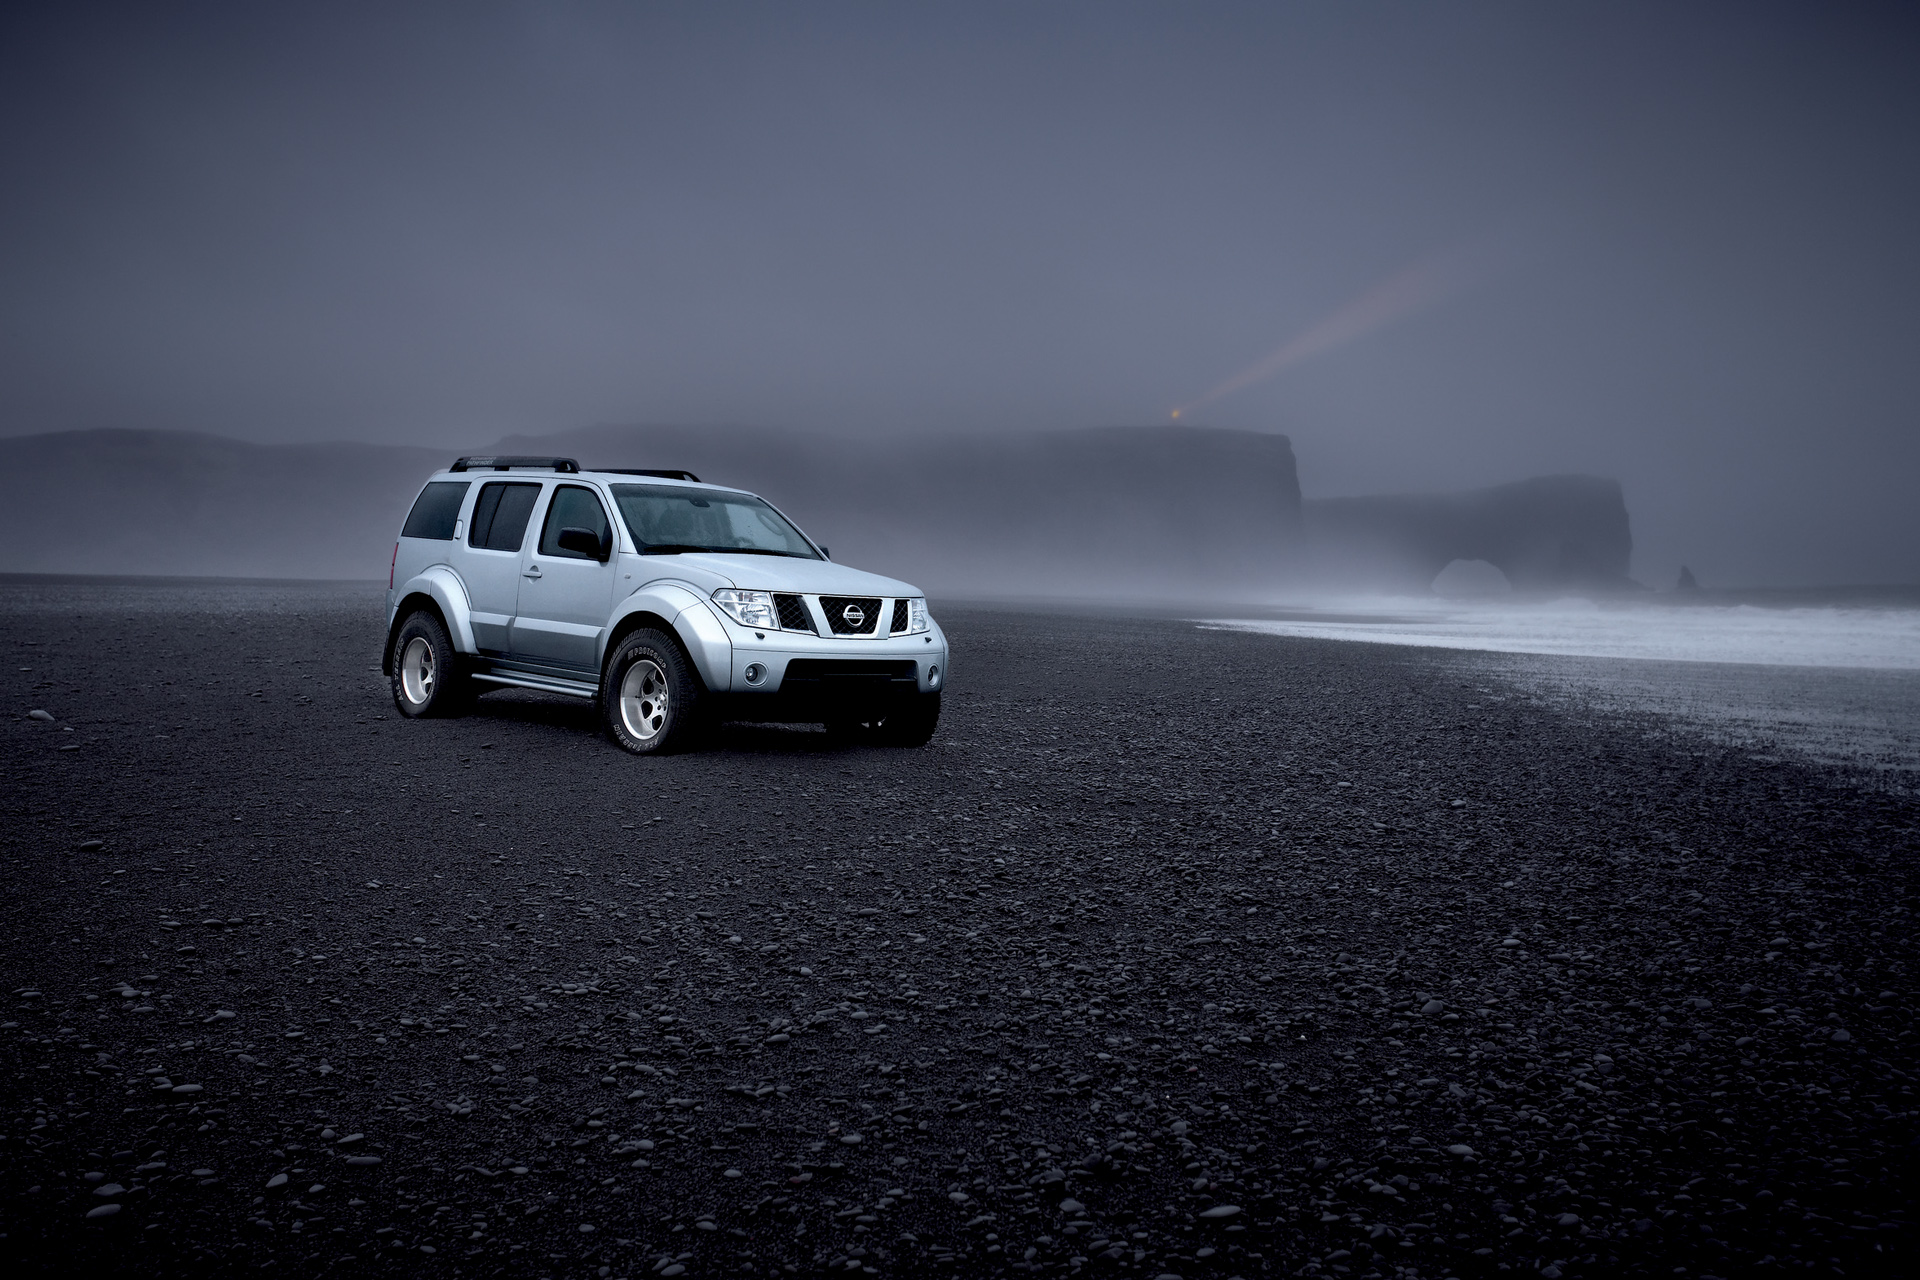 Arctic Trucks Nissan Pathfinder photo 61484